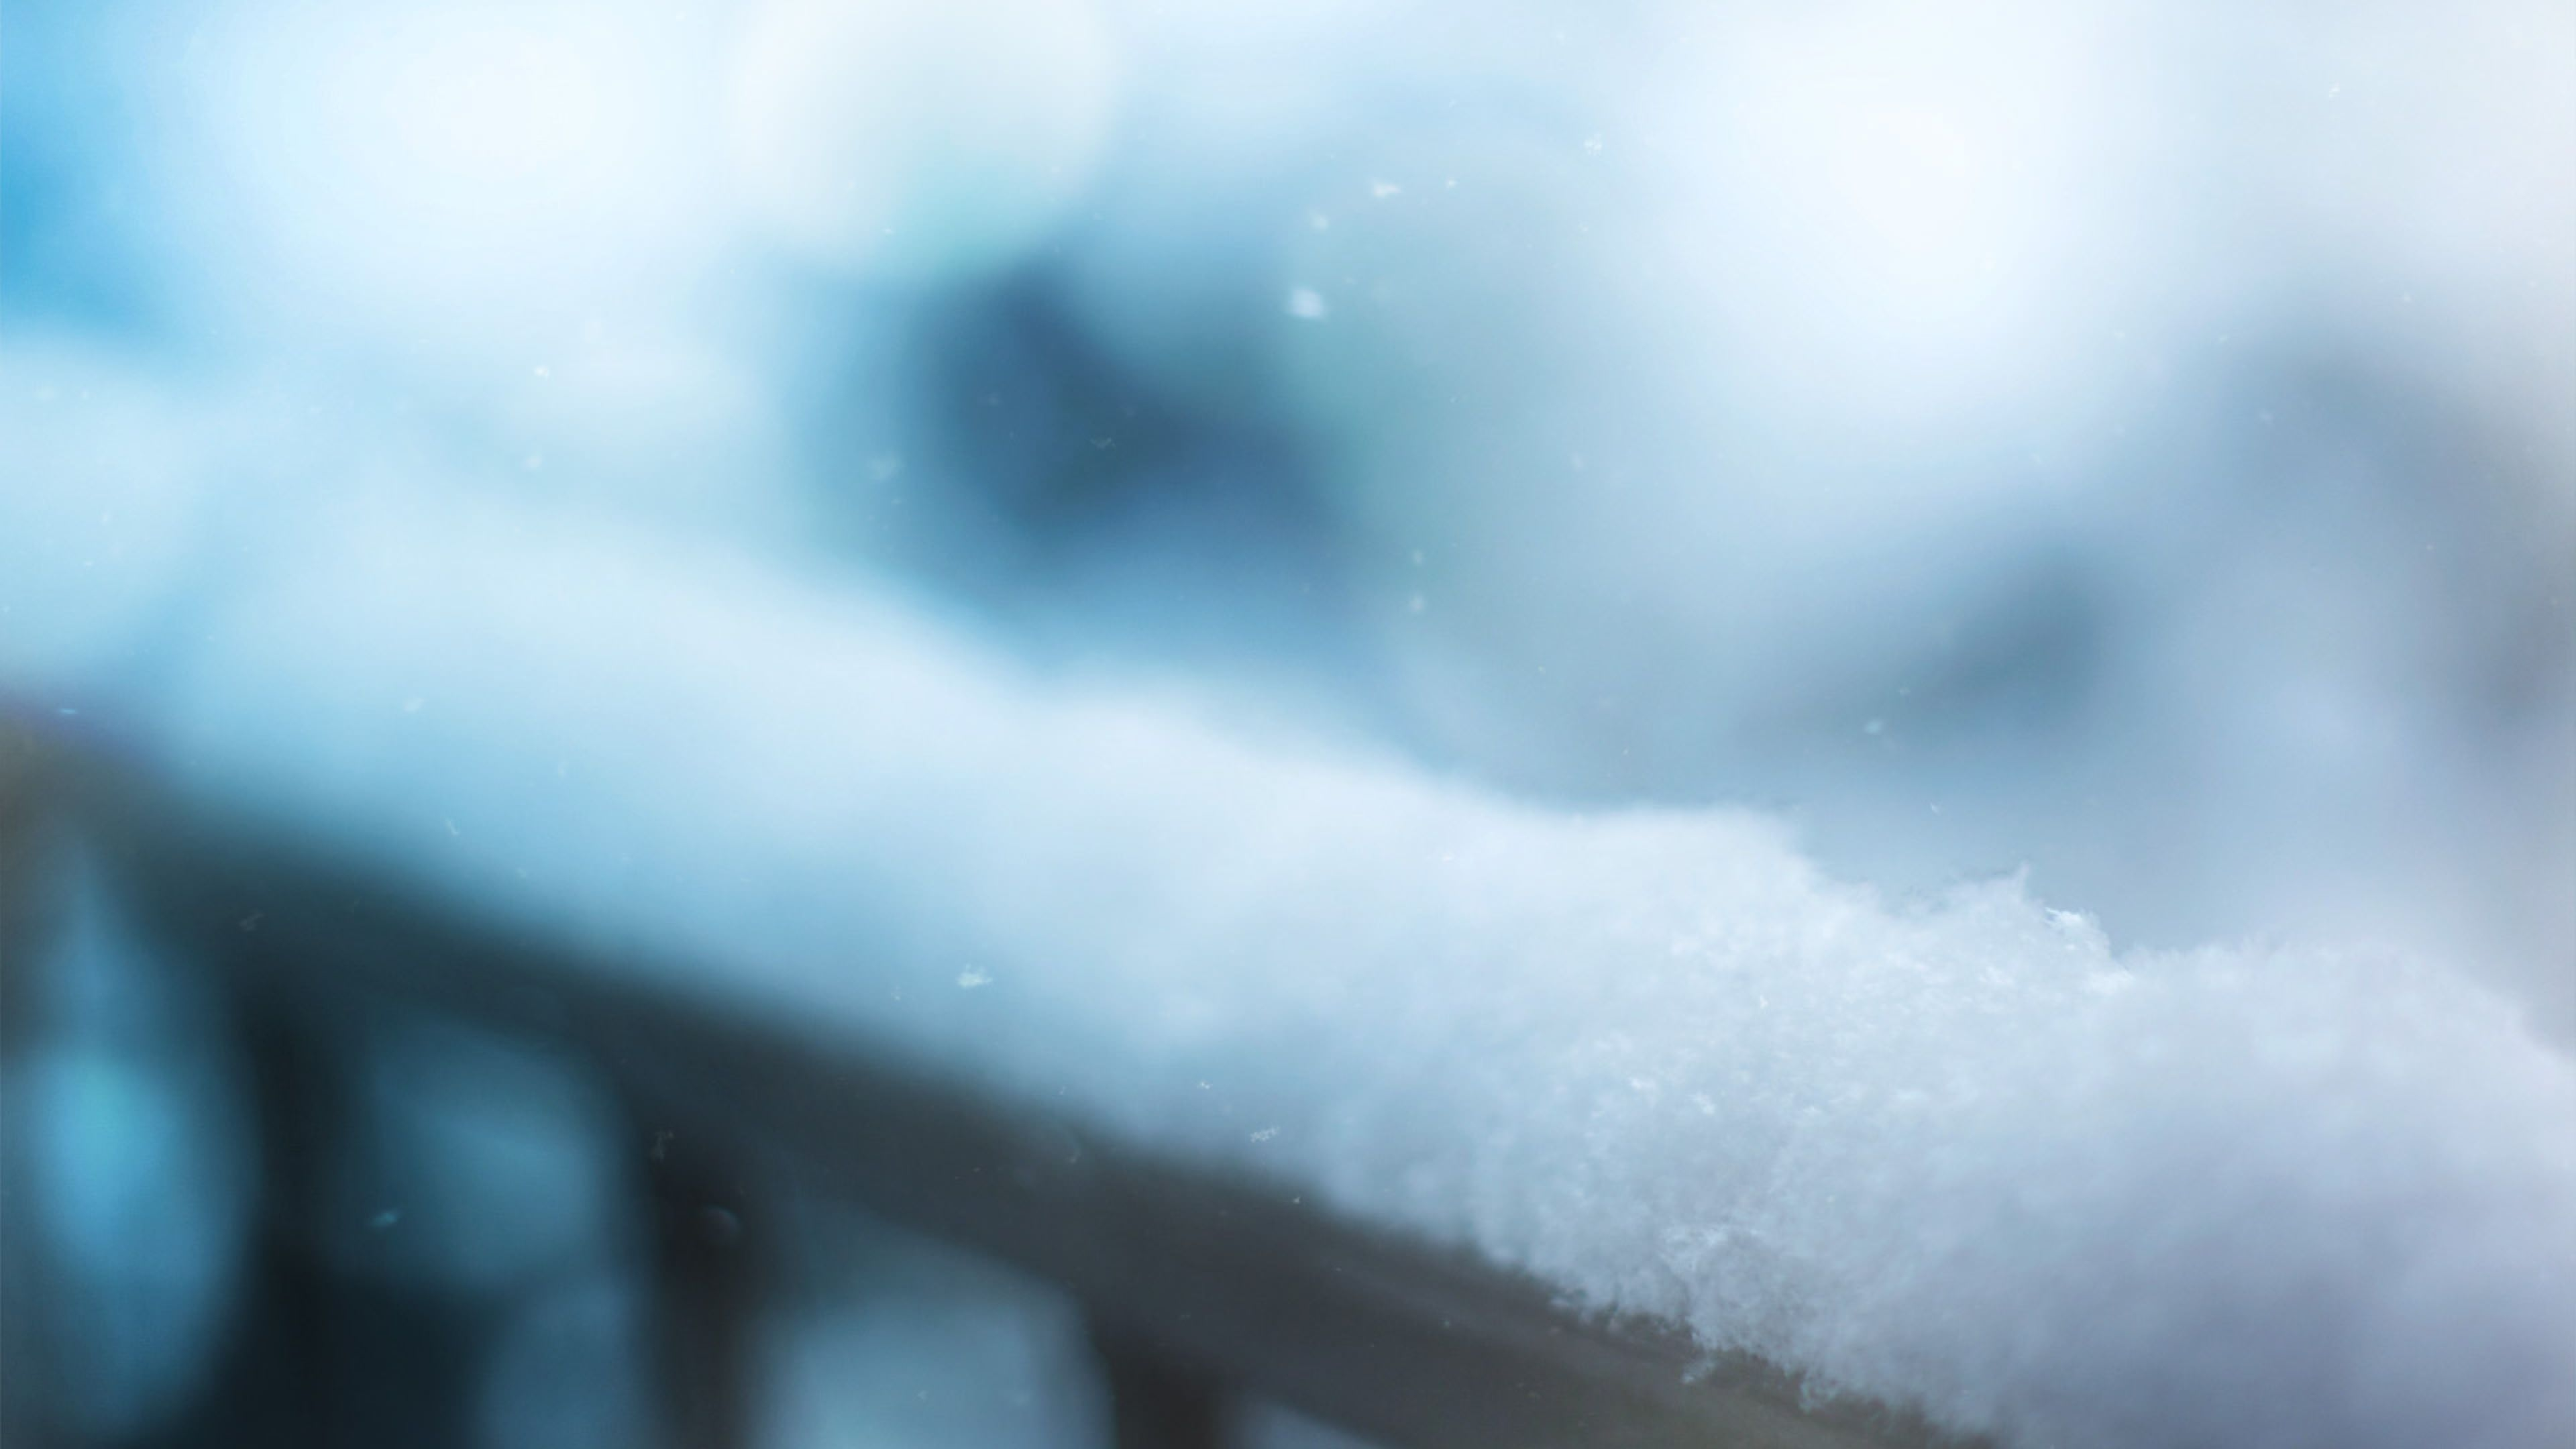 20 Hq Snow Backgrounds Wallpapers Images Freecreatives